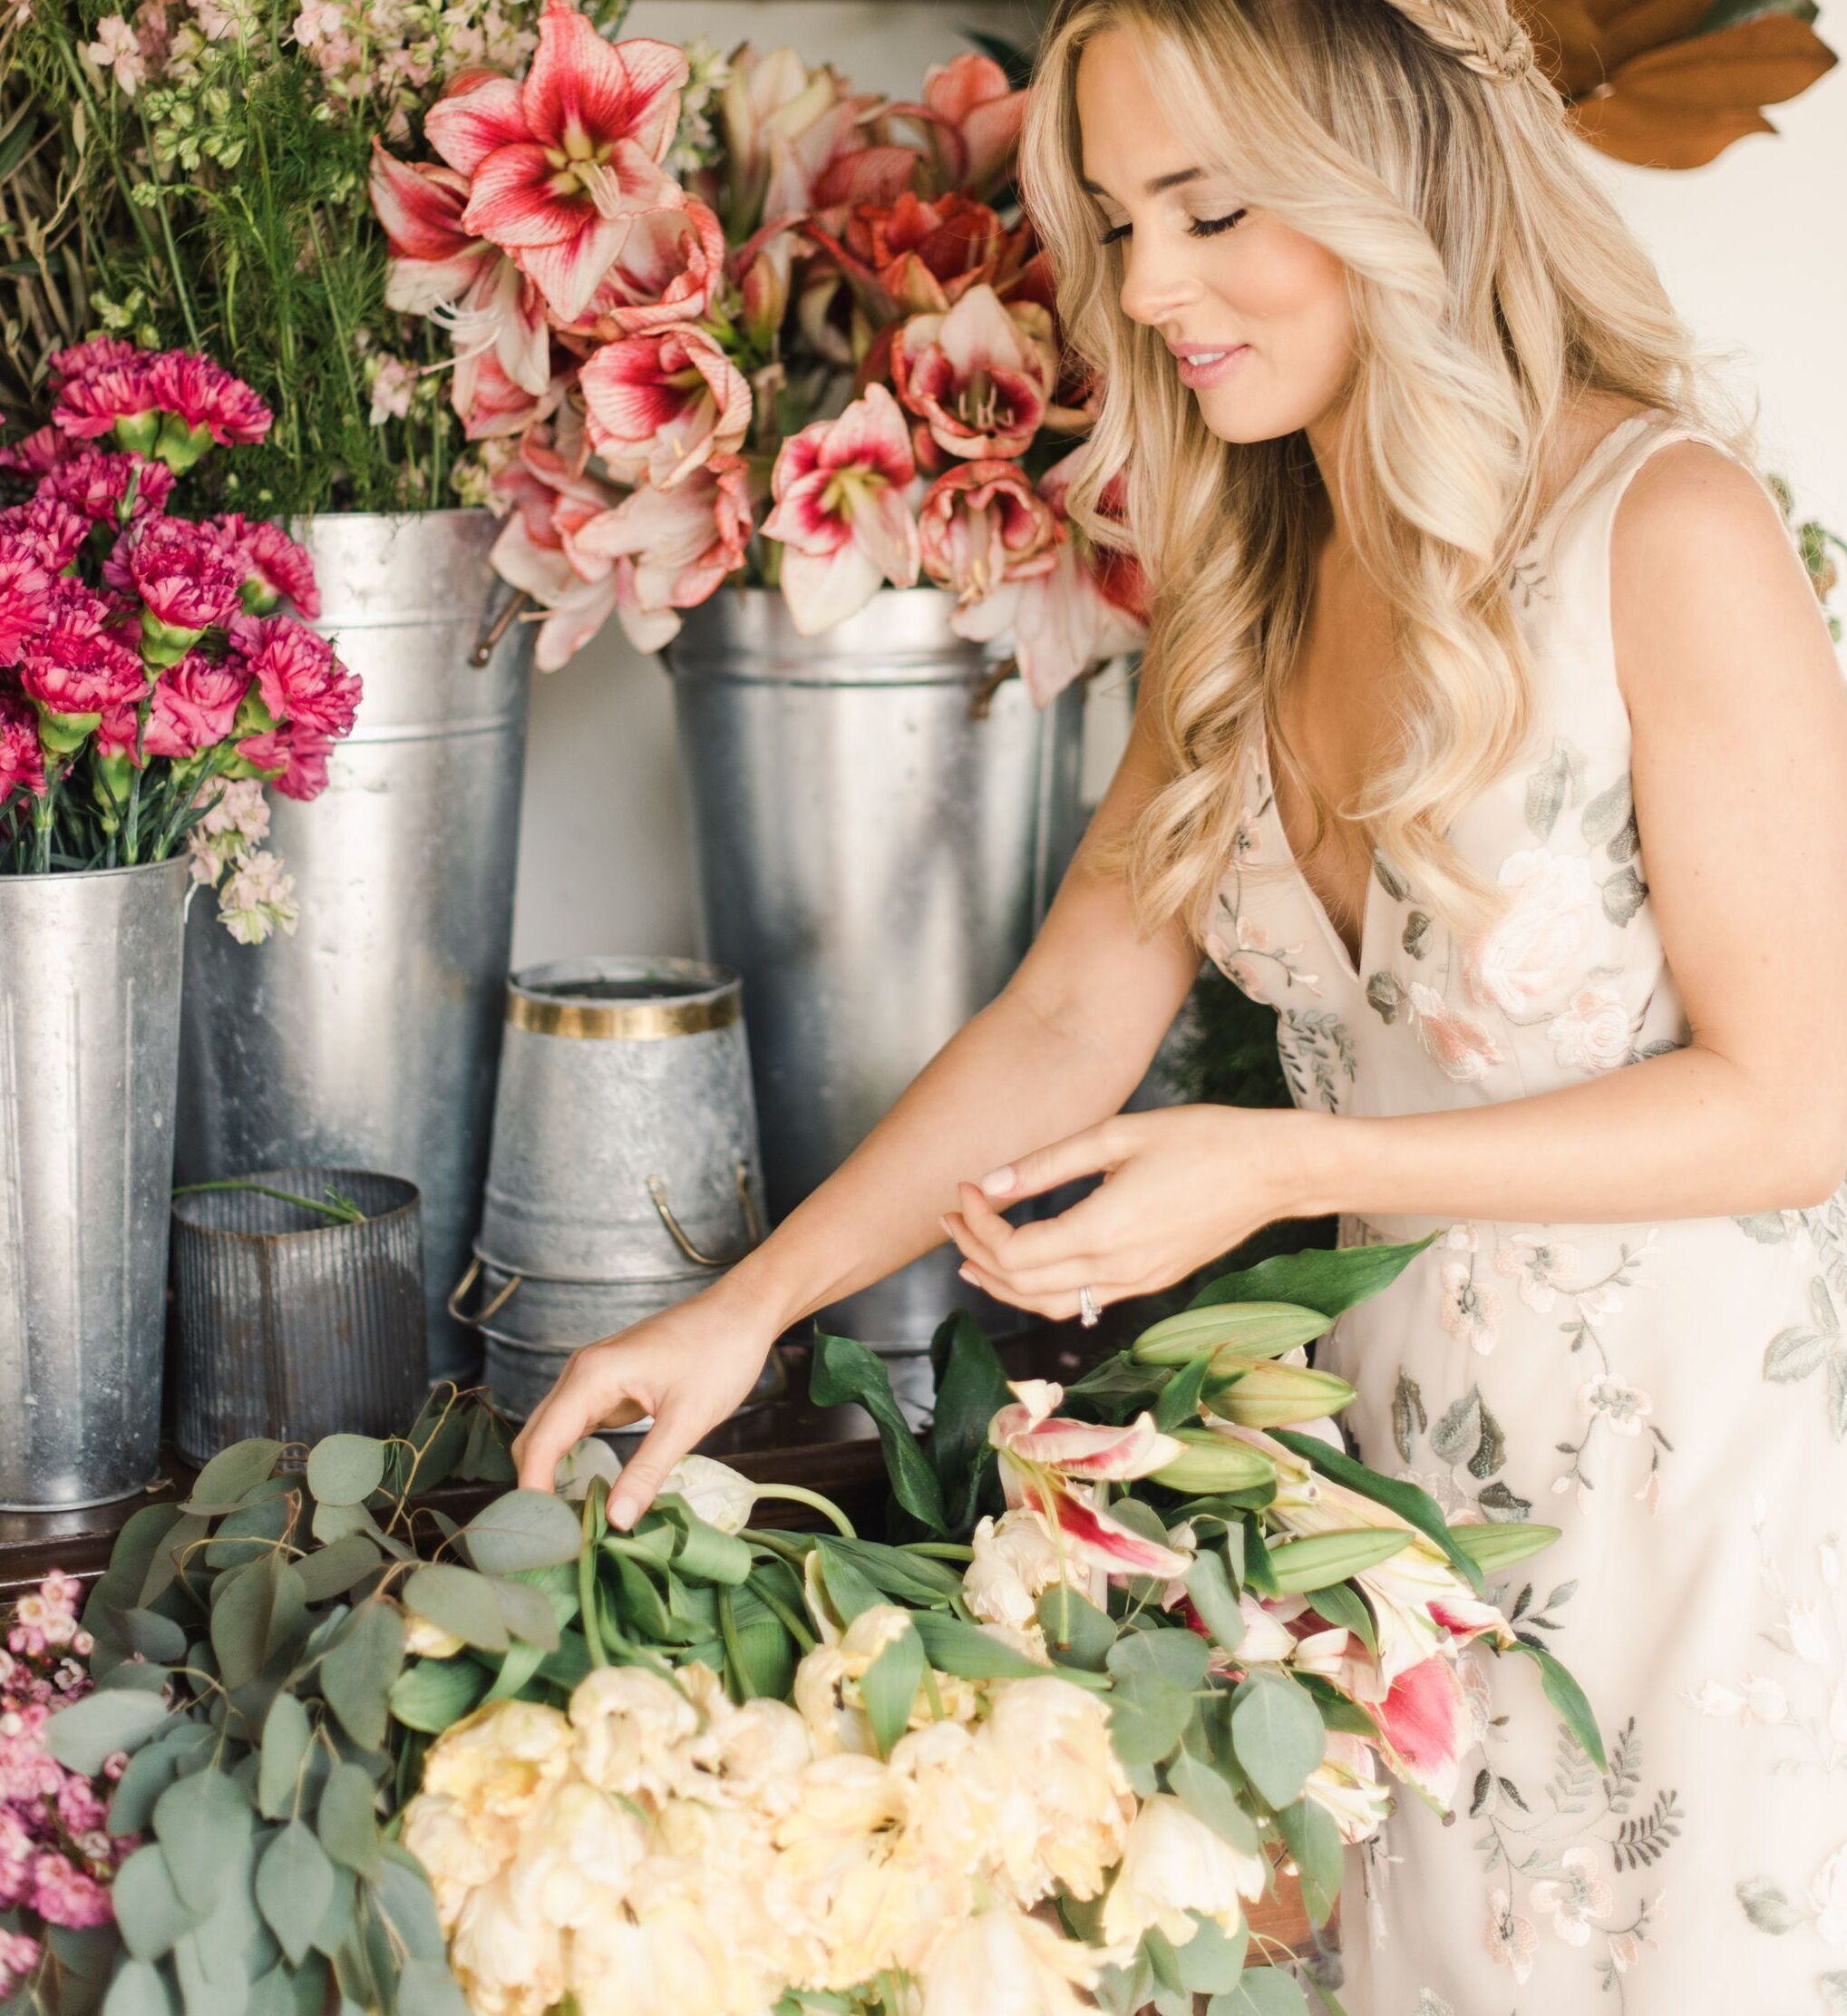 FiftyFlowers - Chelsea-Rousy-flowers-arranging-bride